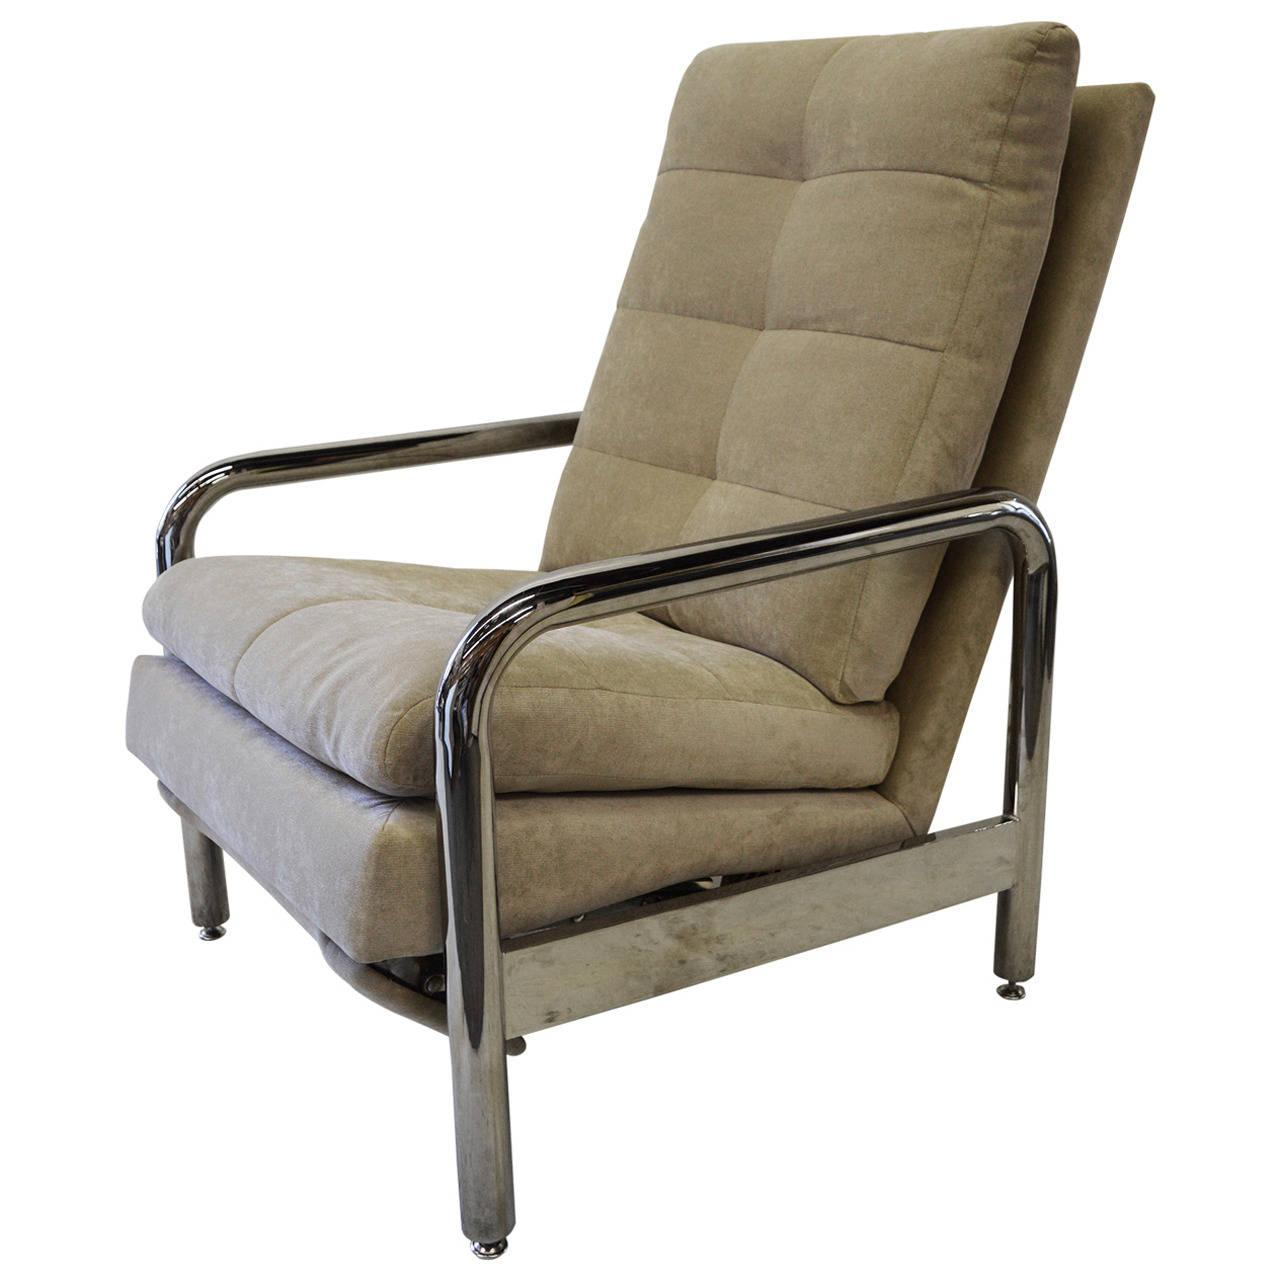 sc 1 st  Chairish & Chrome Recliner by Milo Baughman for Thayer Coggin | Chairish islam-shia.org